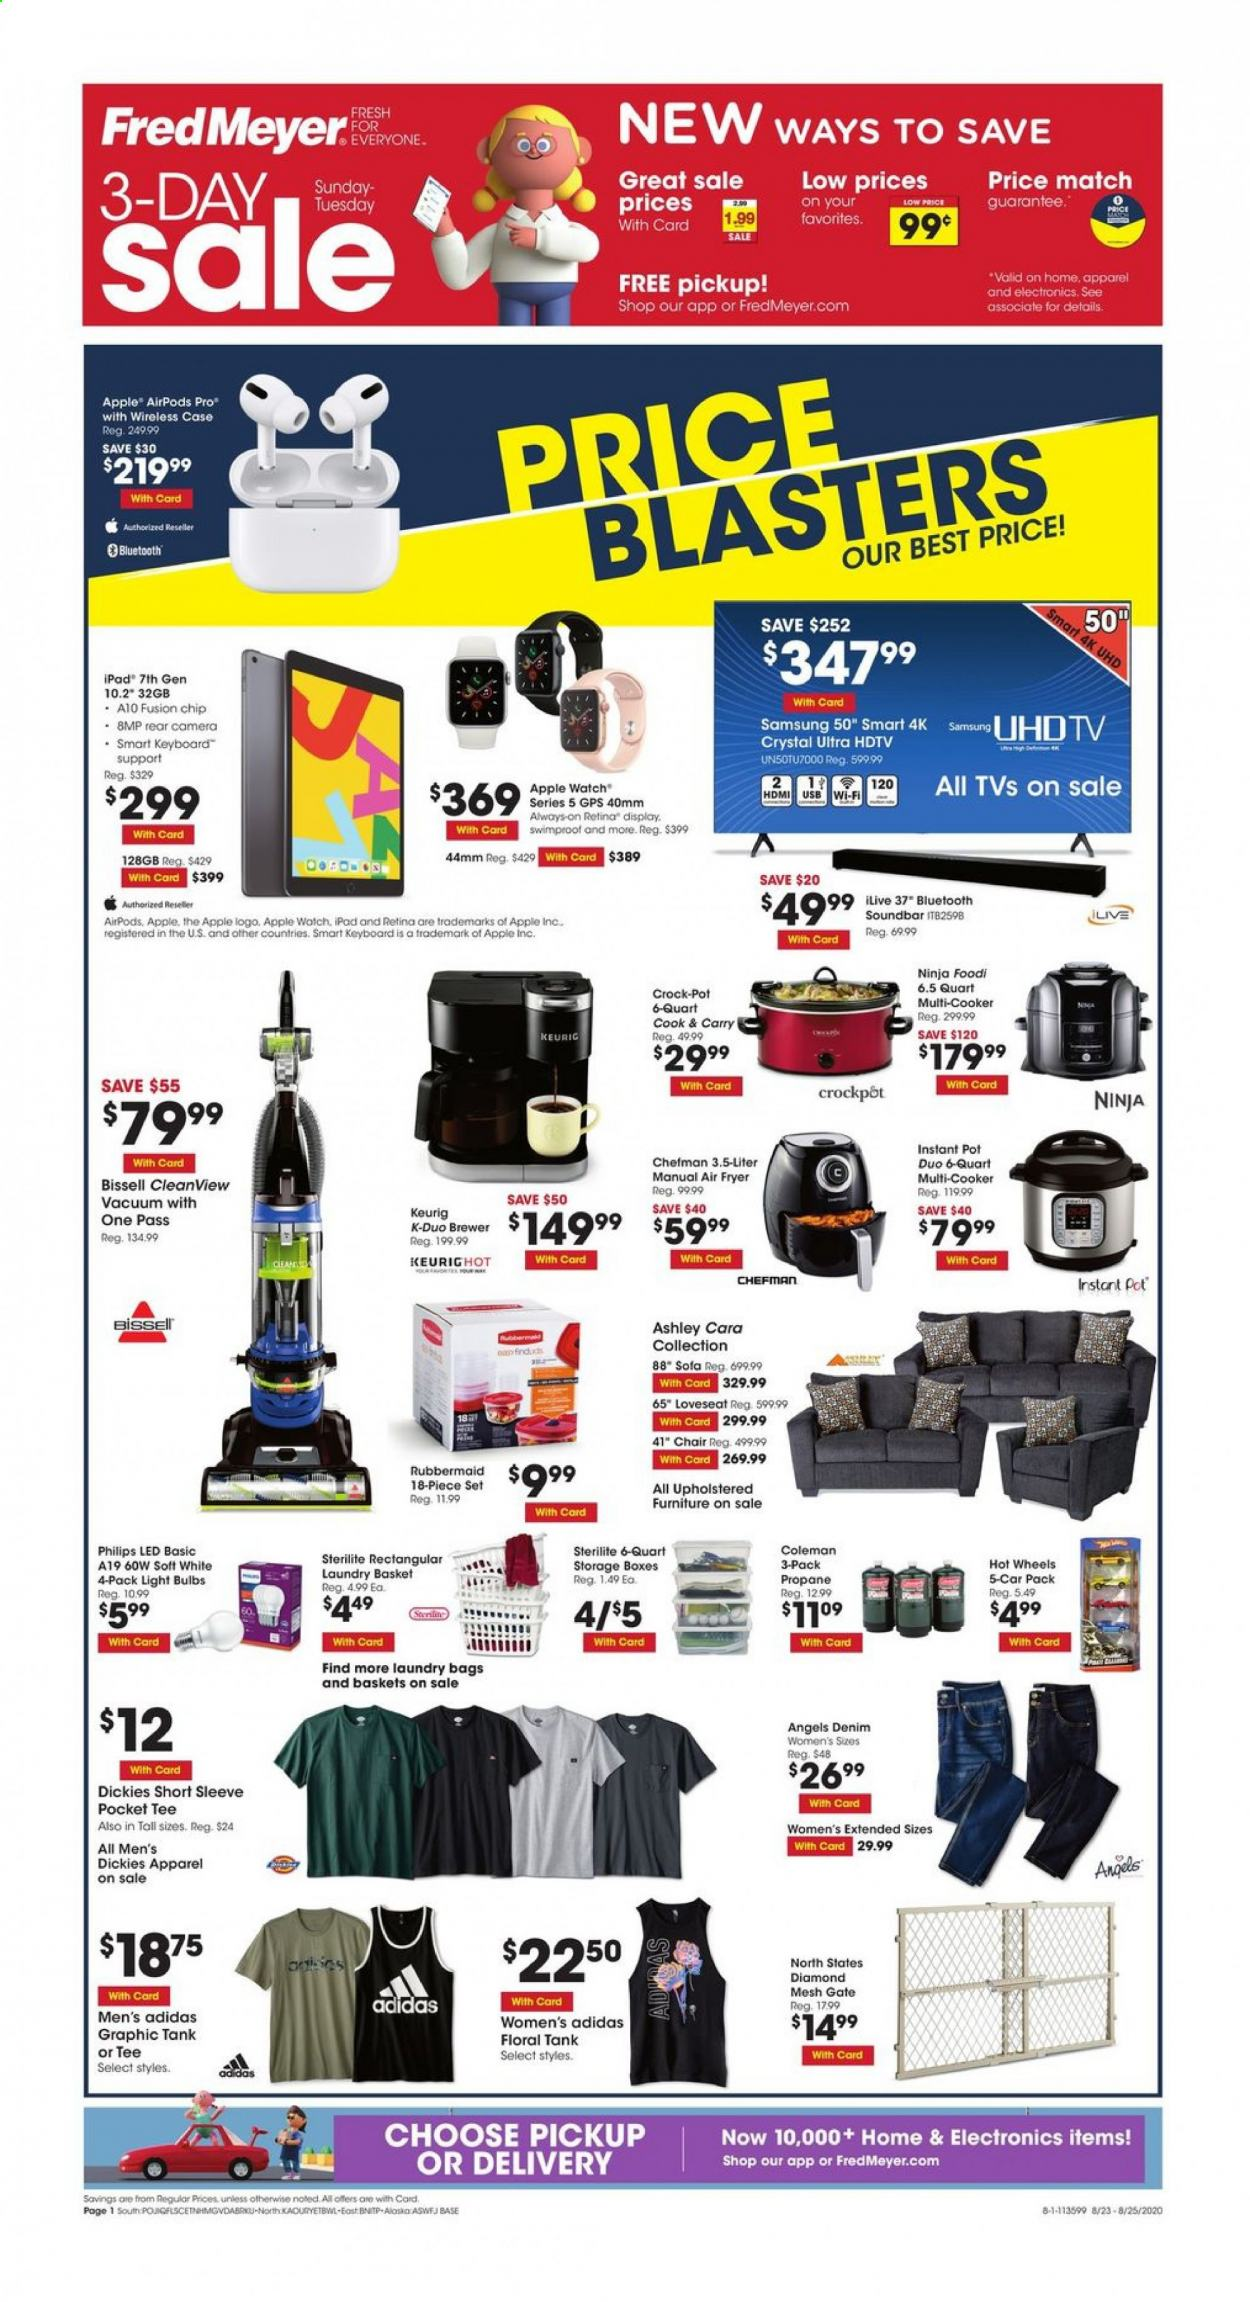 Fred Meyer Flyer - 08.23.2020 - 08.25.2020 - Sales products - adidas, always, apparel, bag, basket, bissell, bluetooth, bulb, camera, case, dickies, fryer, furniture, gps, light bulb, loveseat, samsung, sofa, soundbar, tee, vacuum, watch, wifi, hdmi, hdtv, chair, jeans, keyboard, philips, pot, chefman, ninja, air fryer, instant pot, storage box, hot wheels, brewer, ipad, wireless, car, apple airpods, usb, apple watch, led. Page 1.